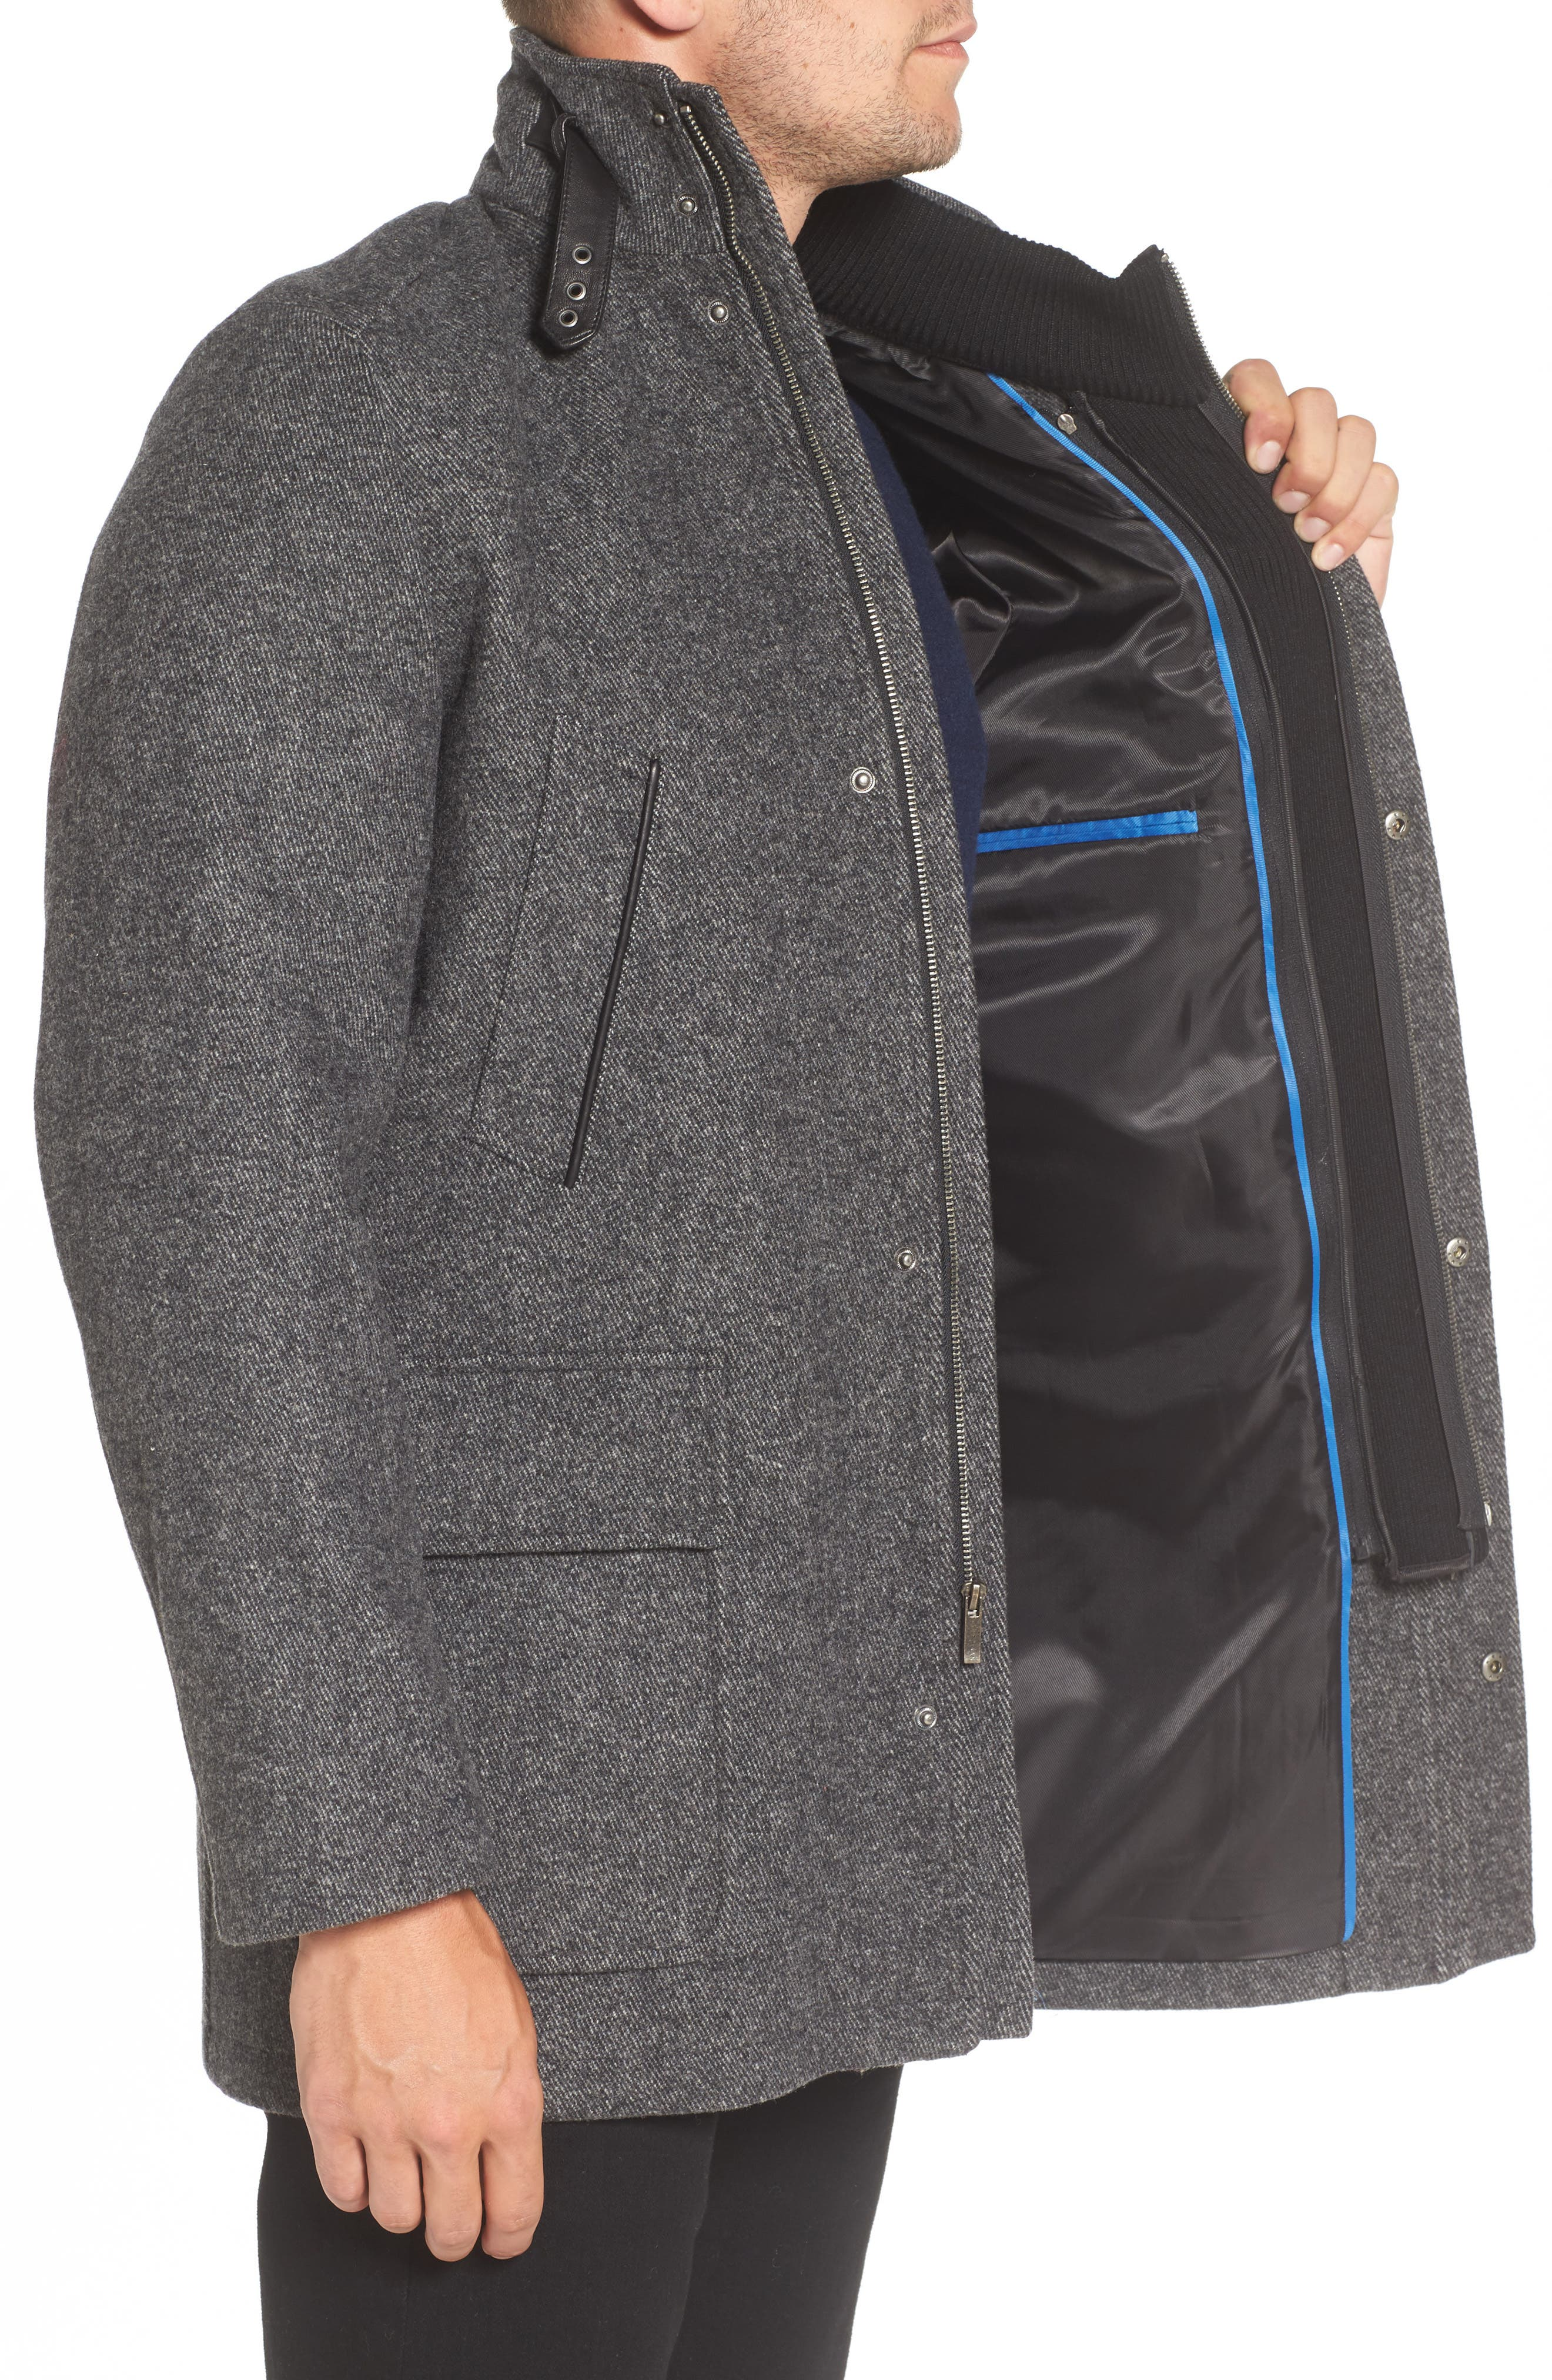 Wool Blend Car Coat with Removable Knit Bib,                             Alternate thumbnail 3, color,                             073